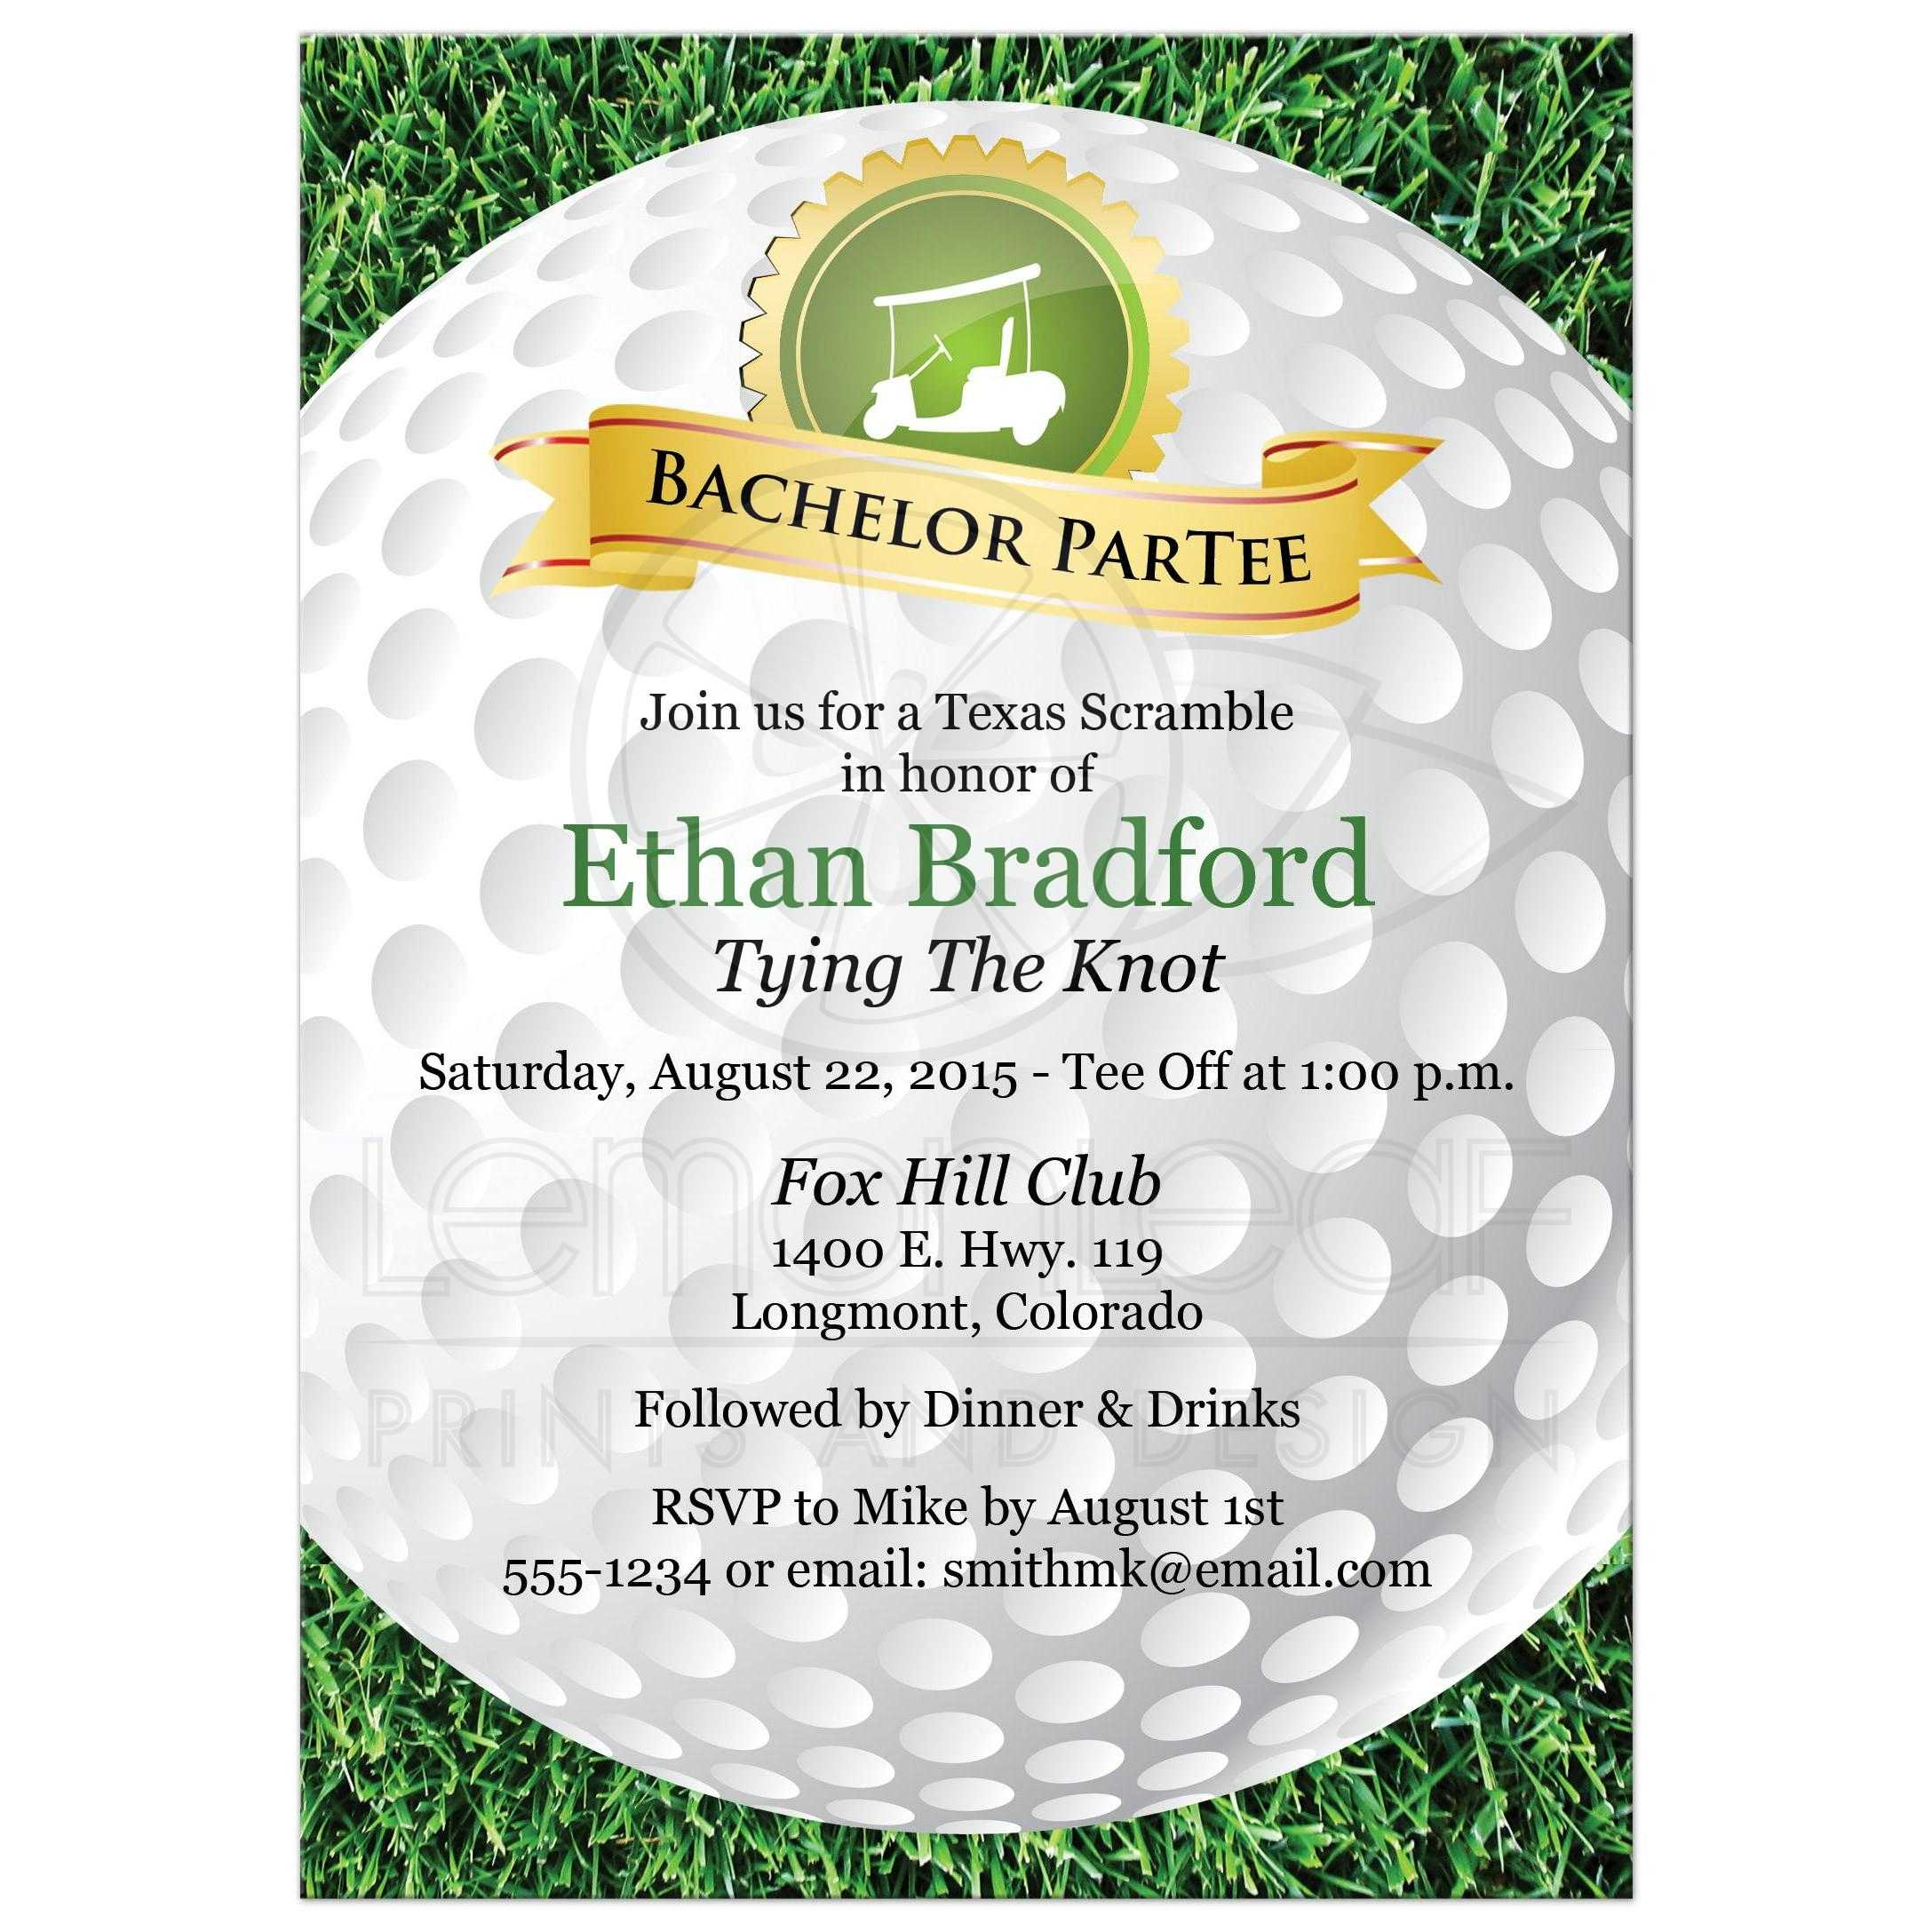 Bachelor party invite gangcraft bachelor party invitation golf golfing theme golf ball grass party invitations monicamarmolfo Choice Image